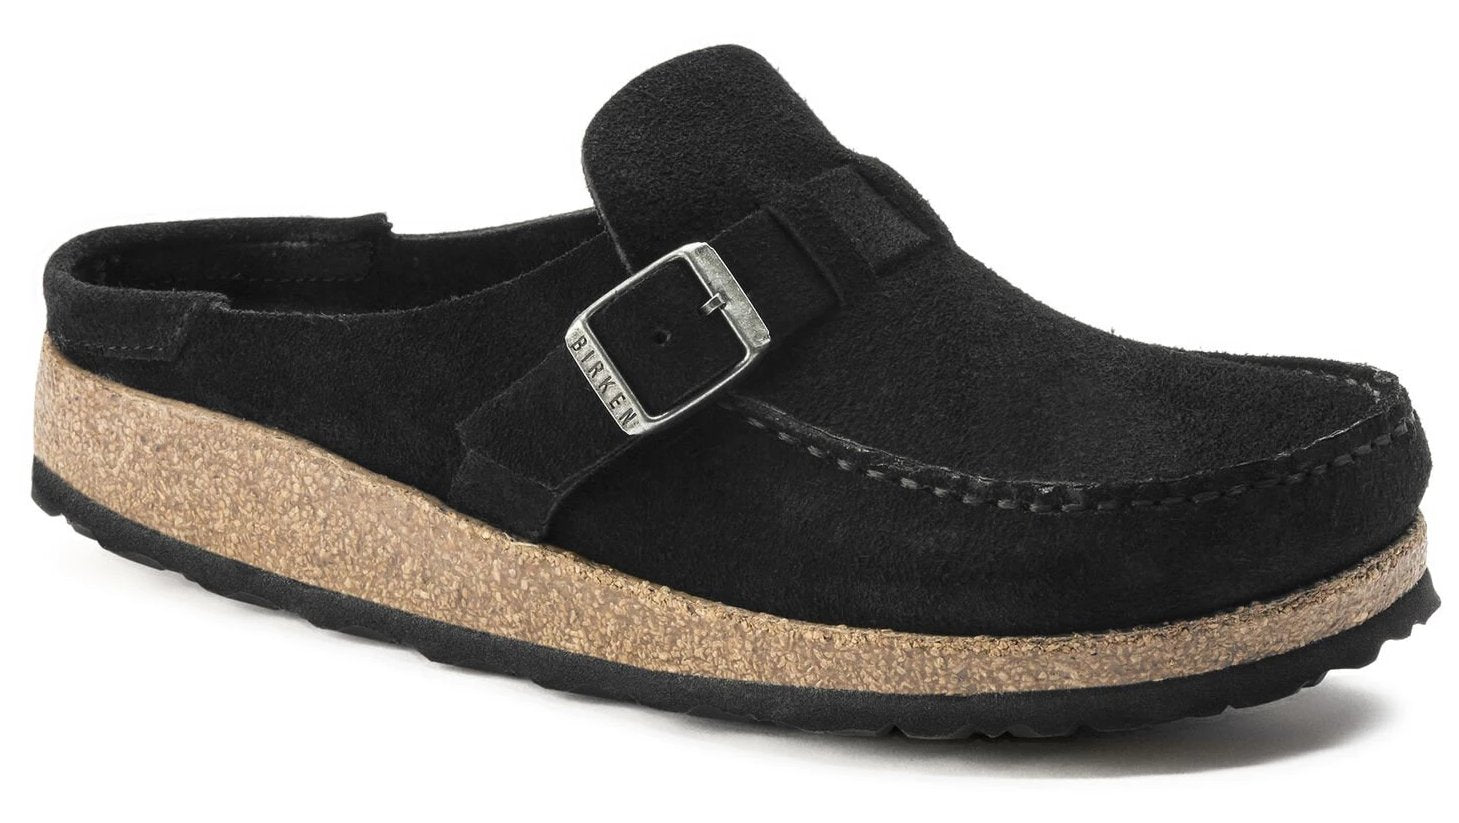 Buckley - Black Suede